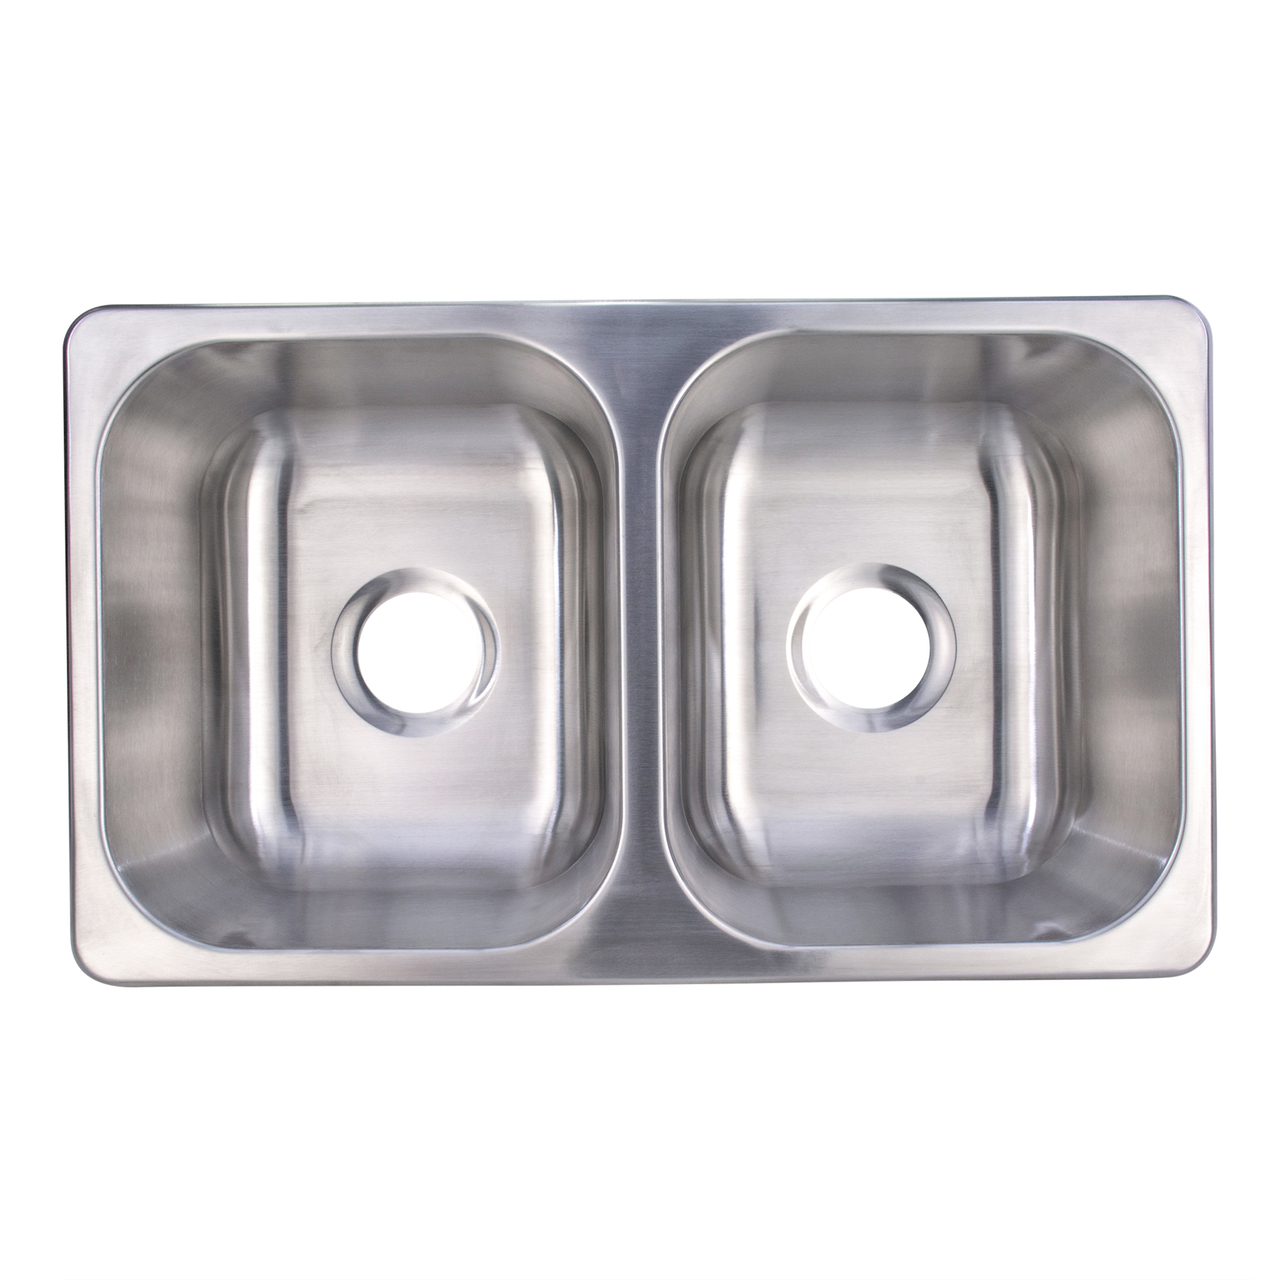 Stainless Steel Double Sink Sinks Double Stainless Steel Rv Sink 27 Quot X 16 Quot X 7 Quot